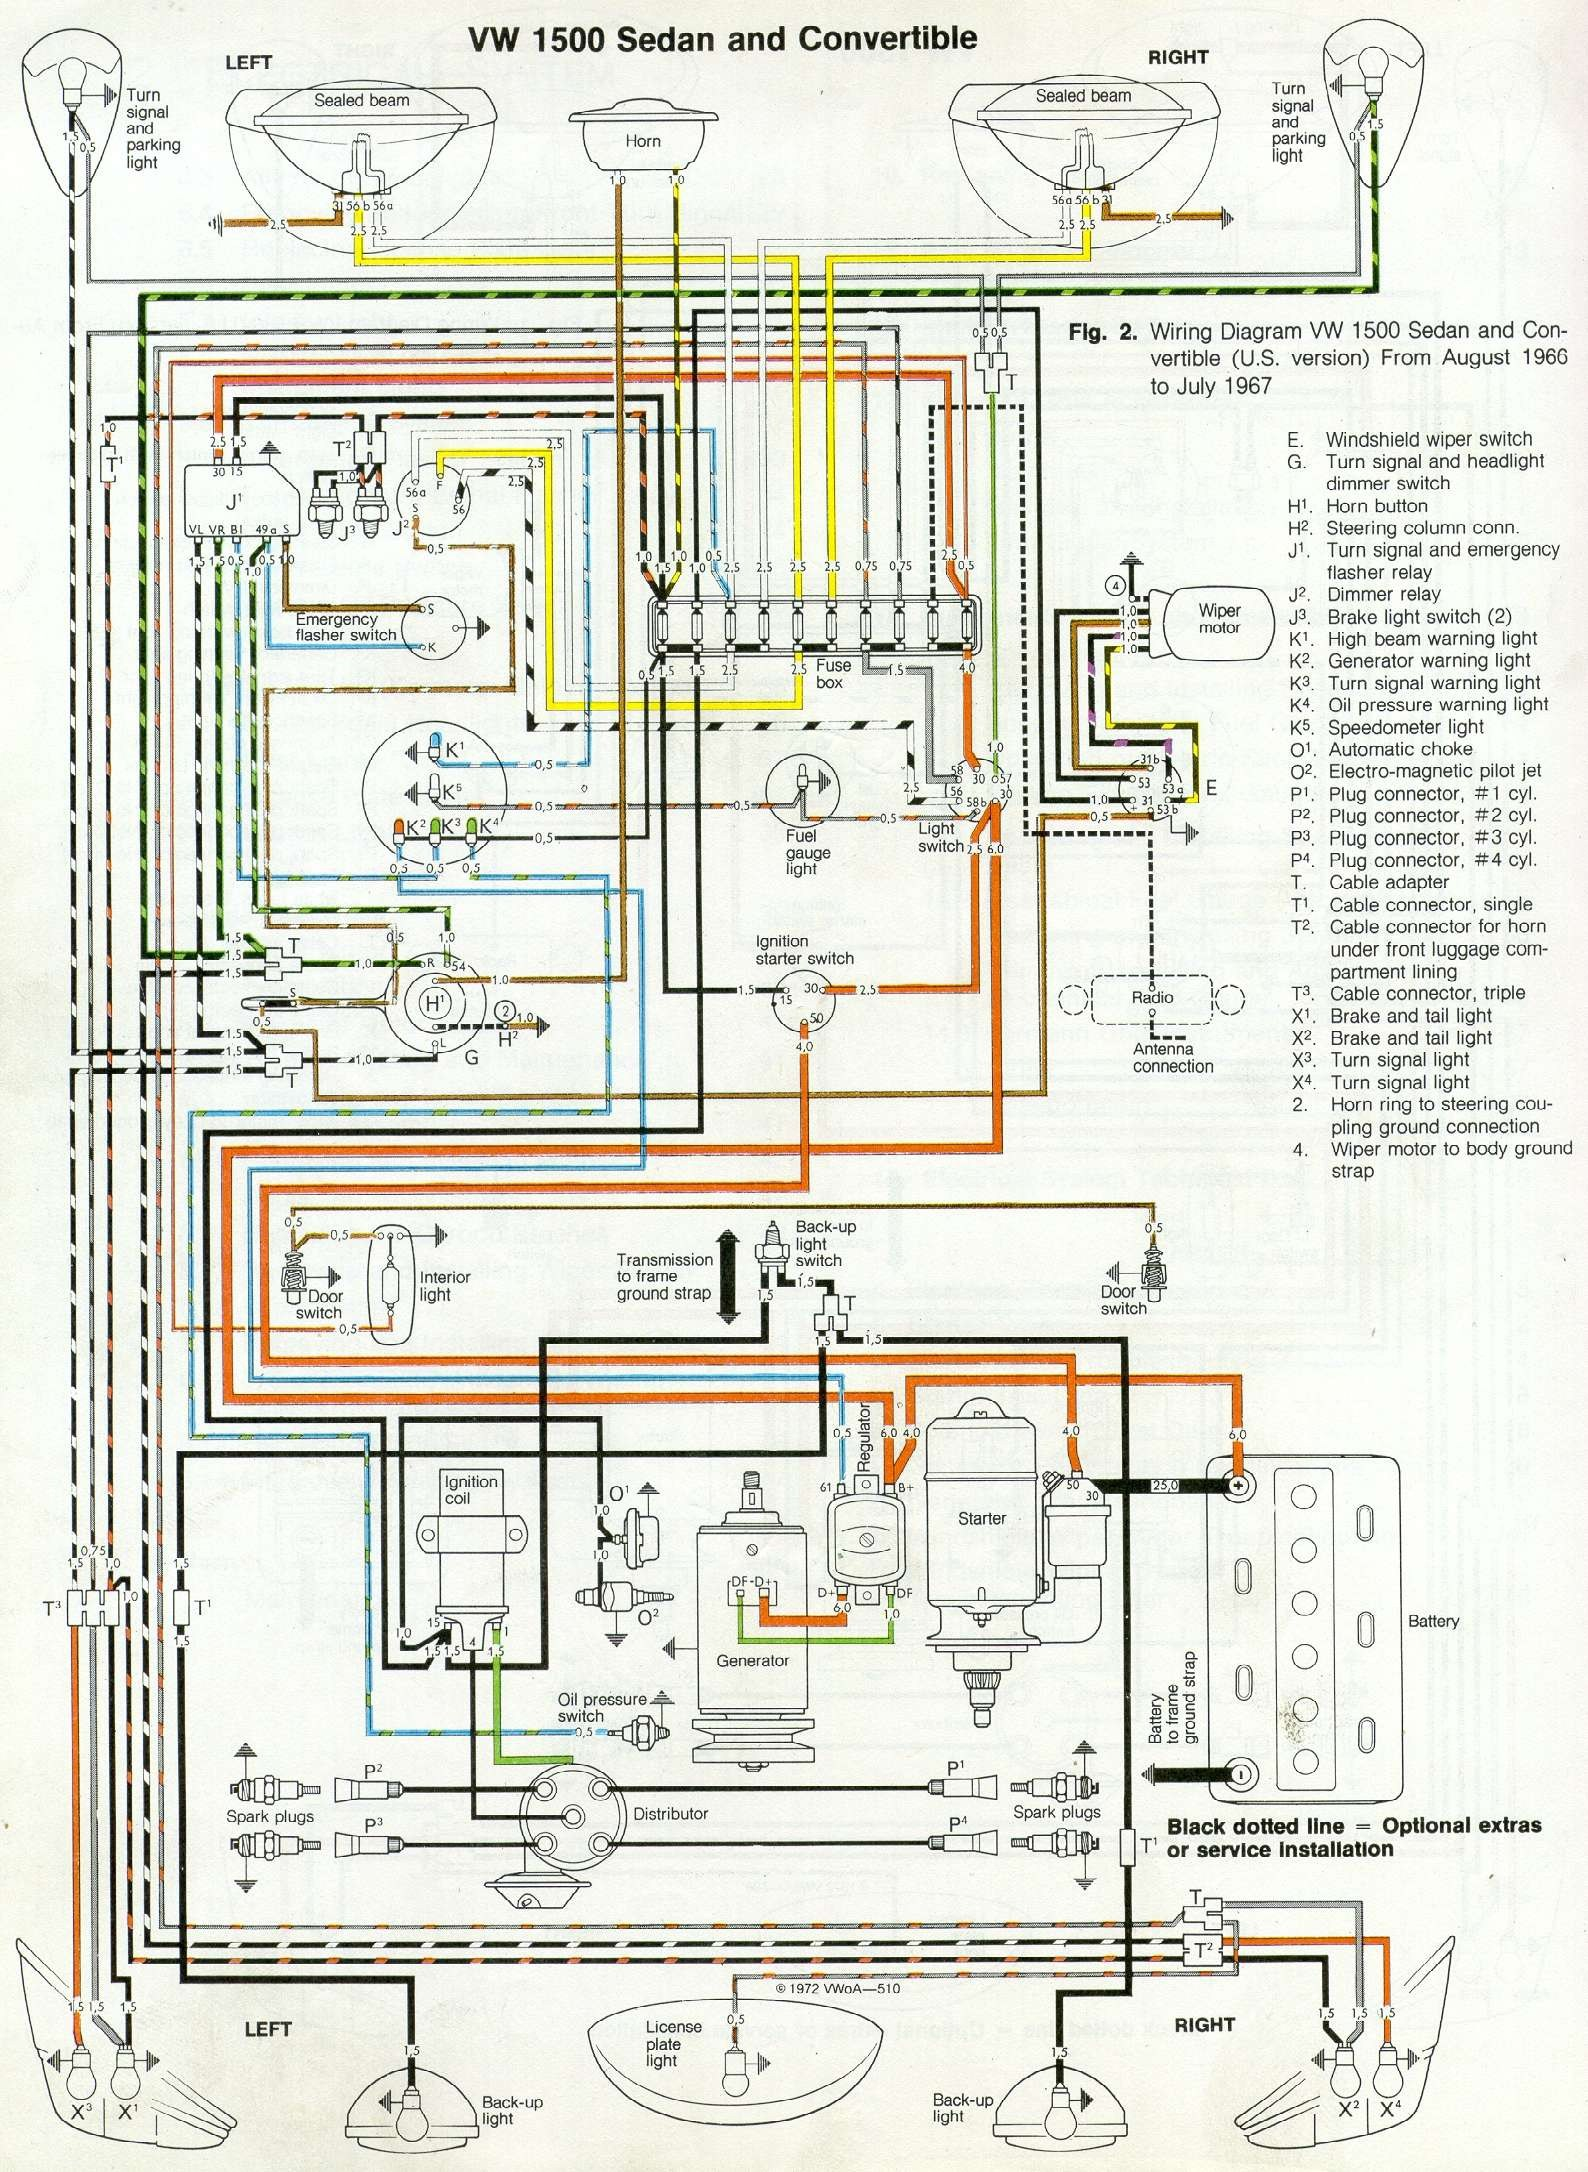 1998 Vw Beetle Wiring Diagram Simple Schema For Honda Accord Volkswagen 2002 Diagrams